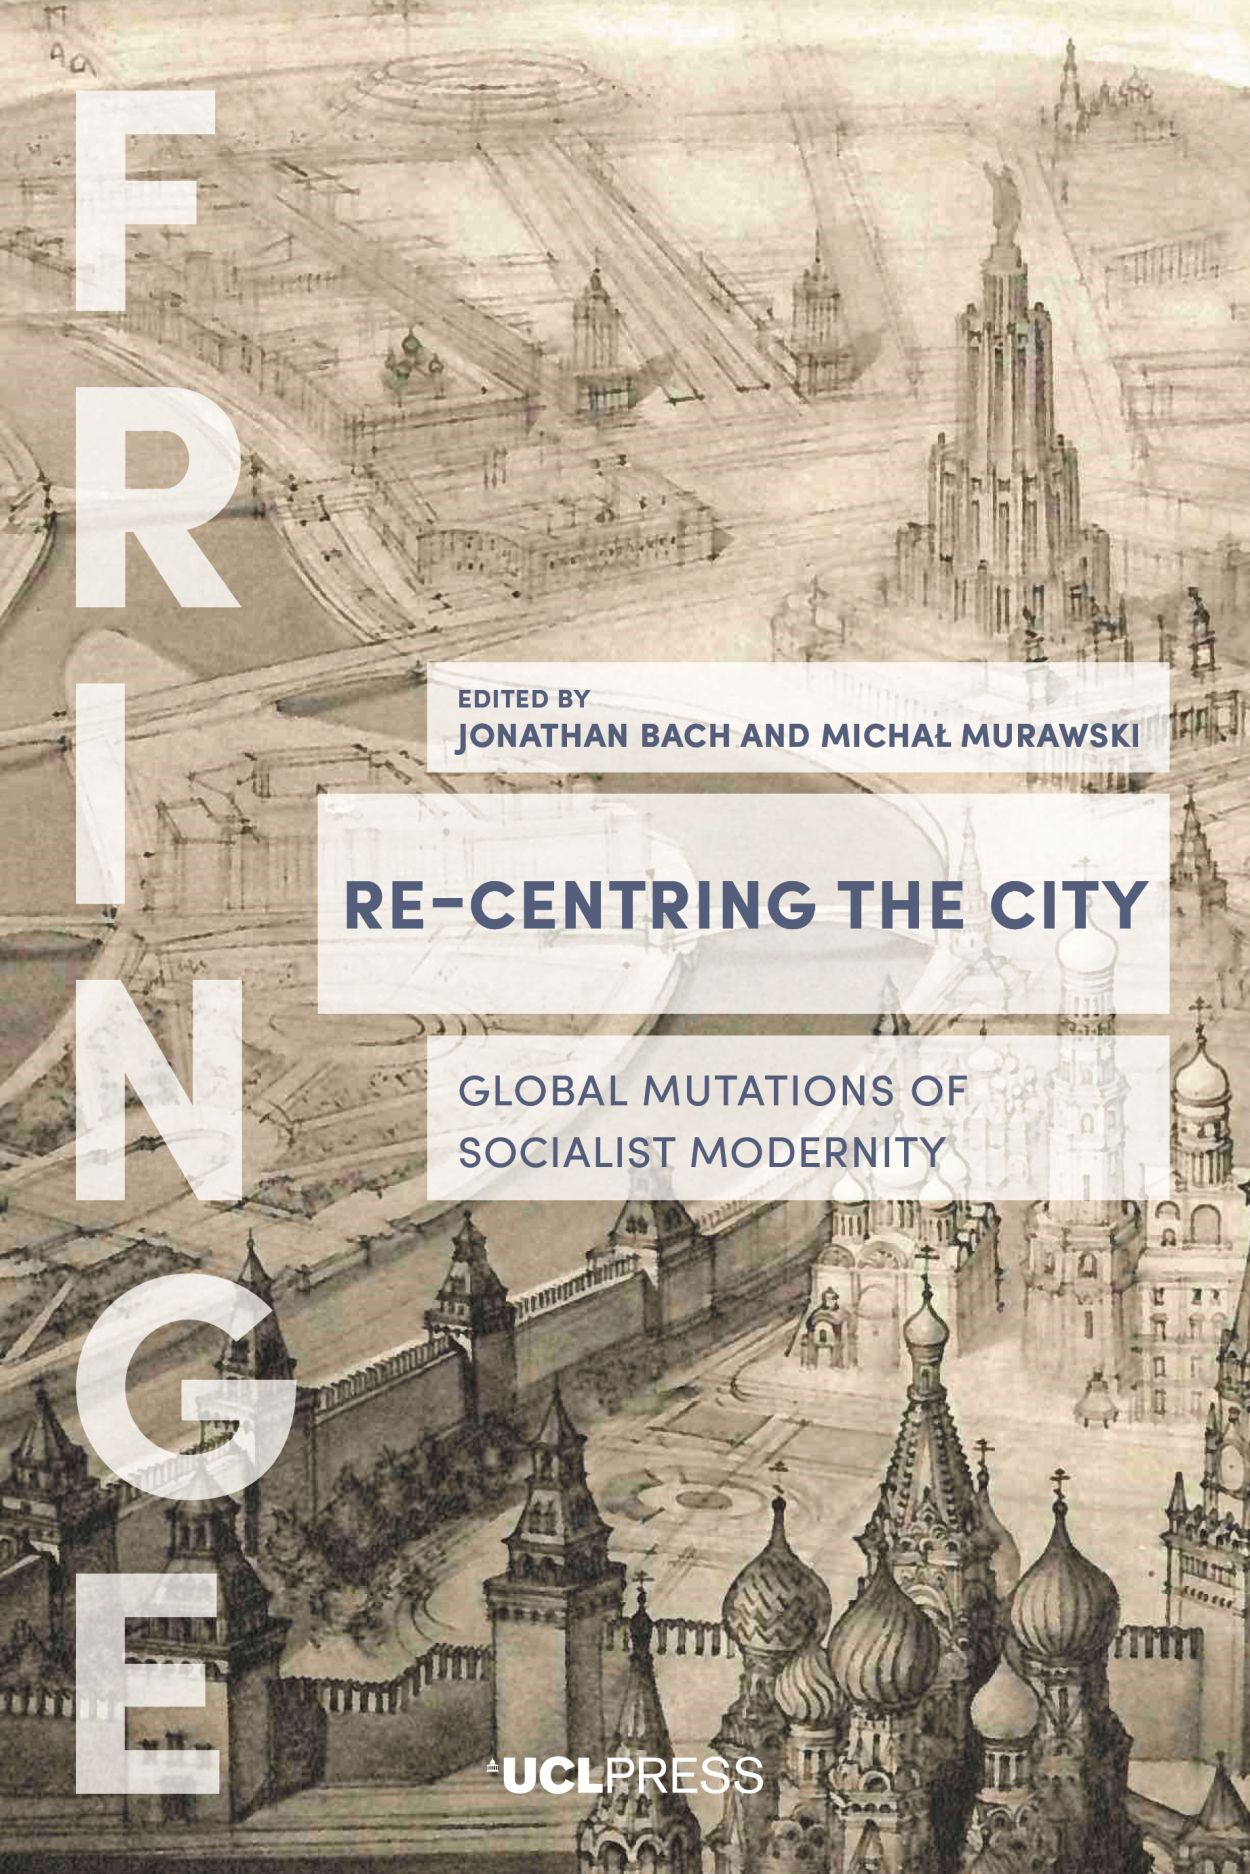 Re-Centring the City: Urban Mutations, Socialist Afterlives and the Global East